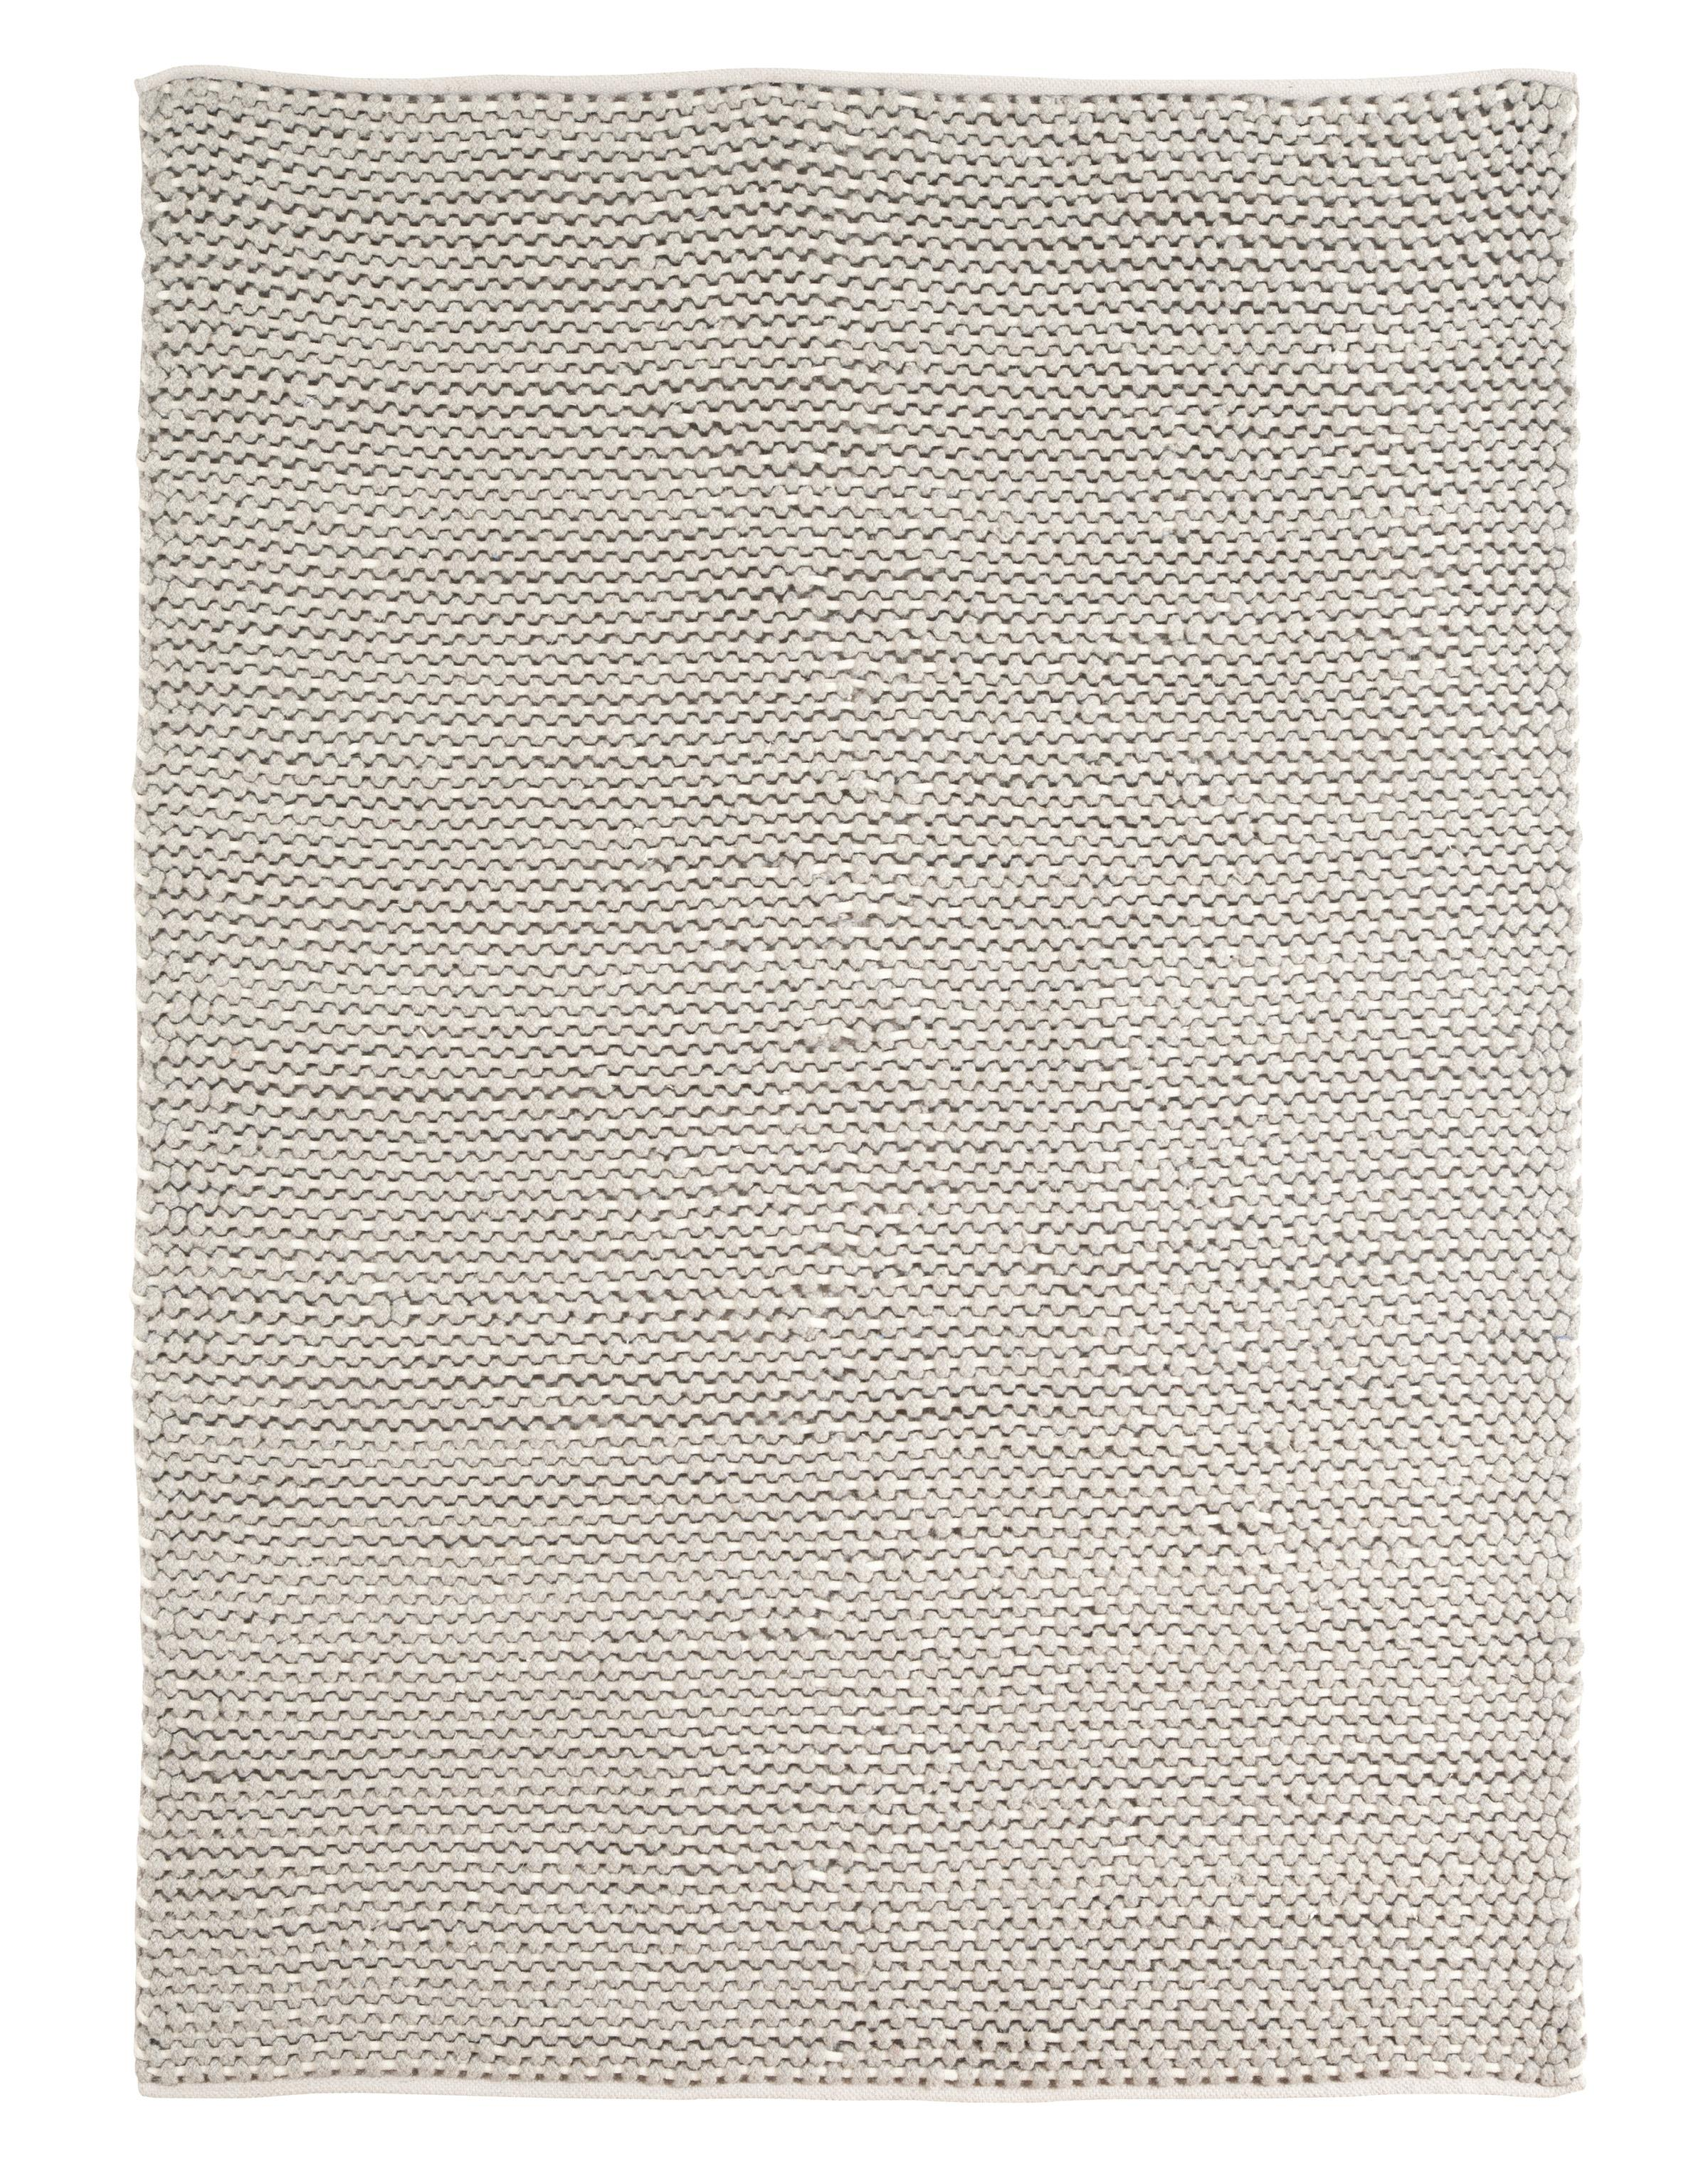 Signature Design by Ashley Casual Area Rugs Handwoven - Gray Large Rug - Item Number: R401421